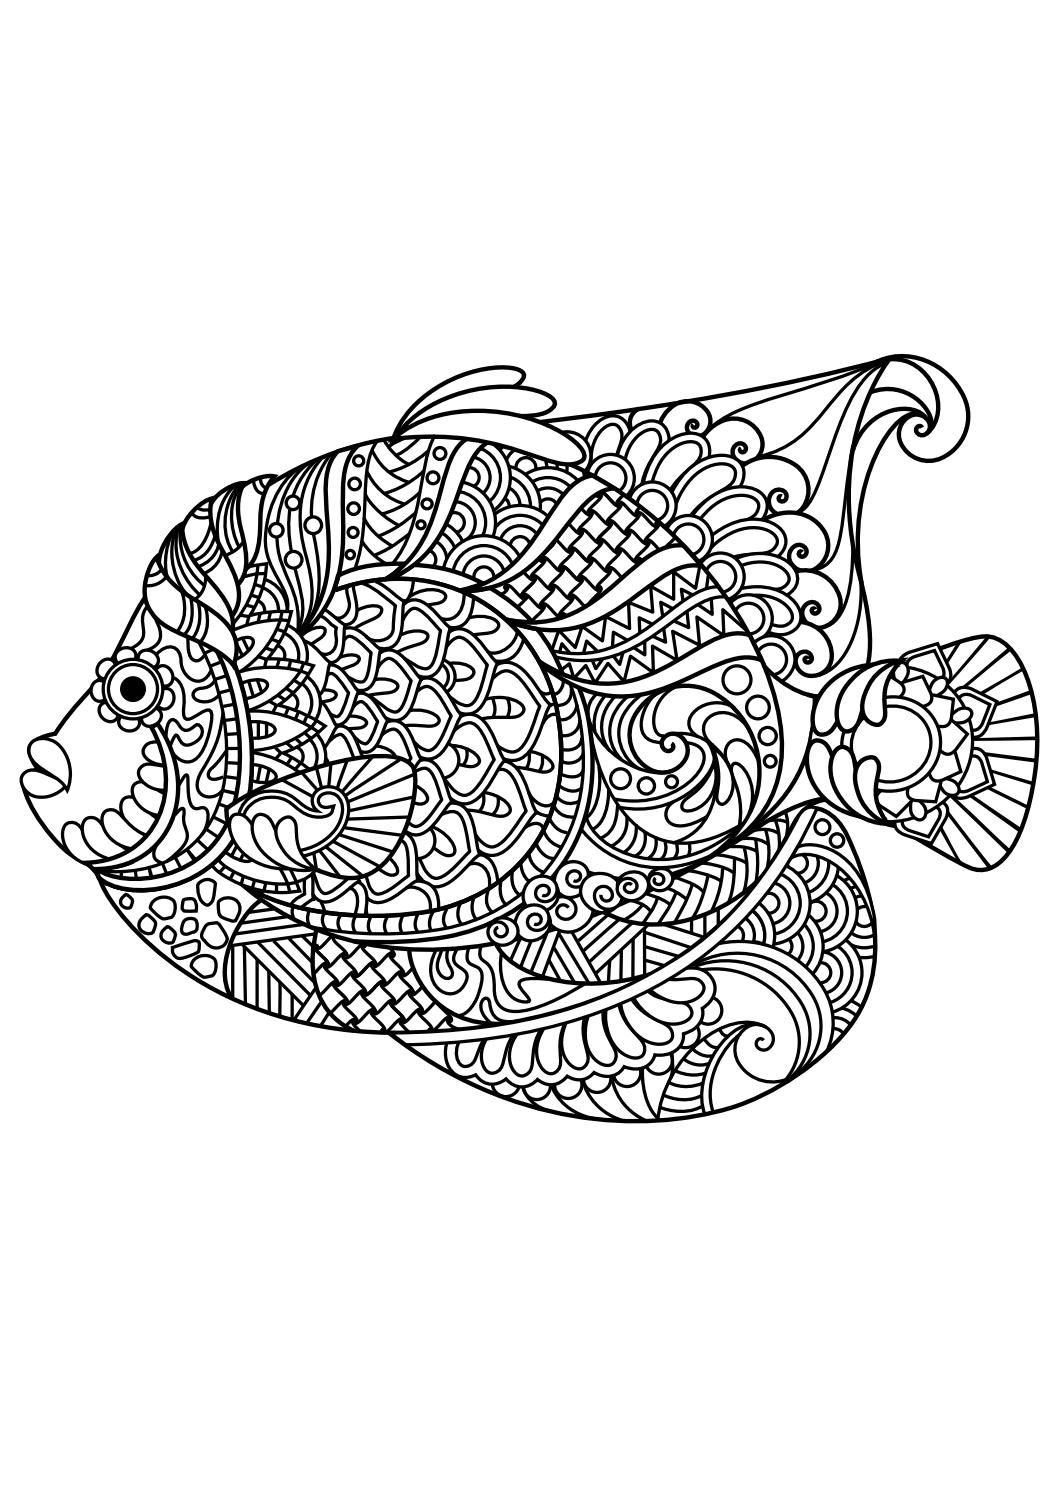 Animal coloring pages pdf | Ausmalbilder, Ausmalbilder für ...